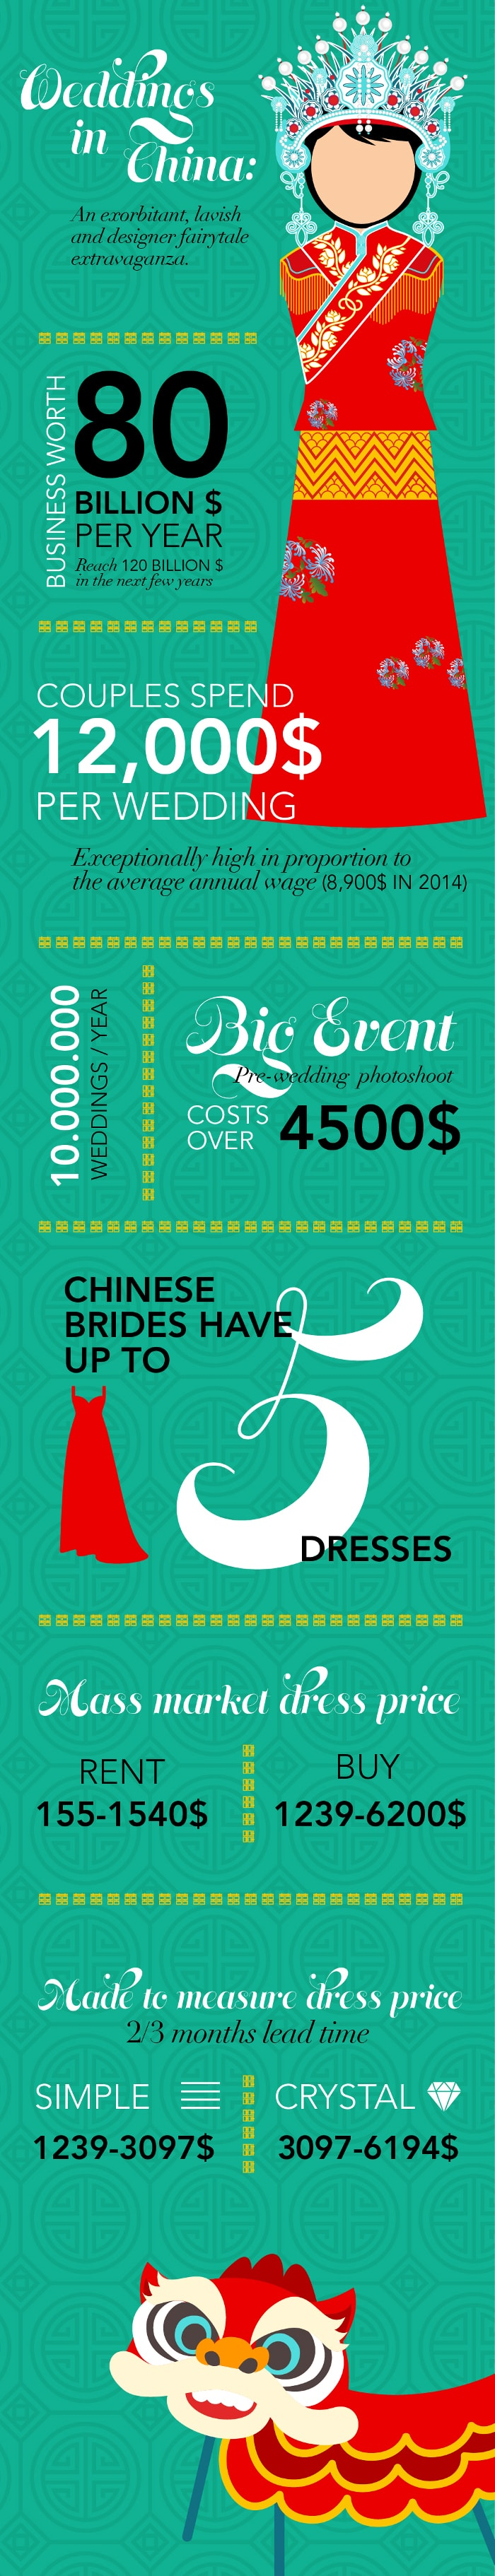 Infographic -Weddings in China: An exorbitant, lavish and designer fairytale extravaganza